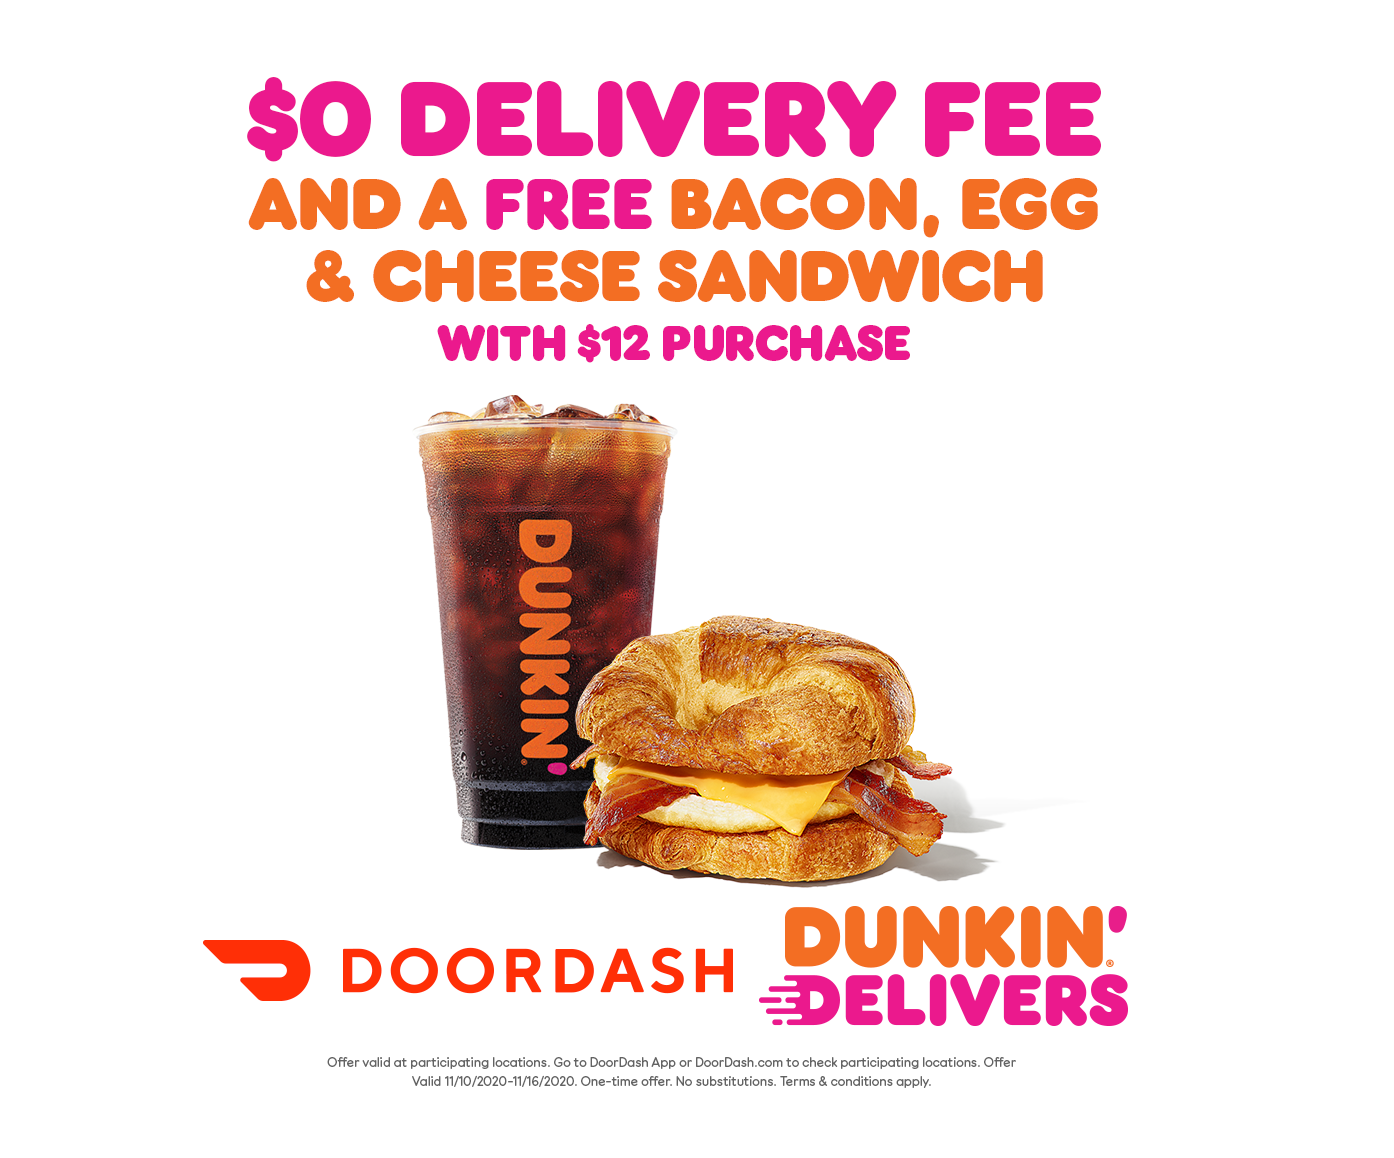 Start Your Morning with a Free Breakfast Sandwich & $0 Delivery Fee from Dunkin' and DoorDash